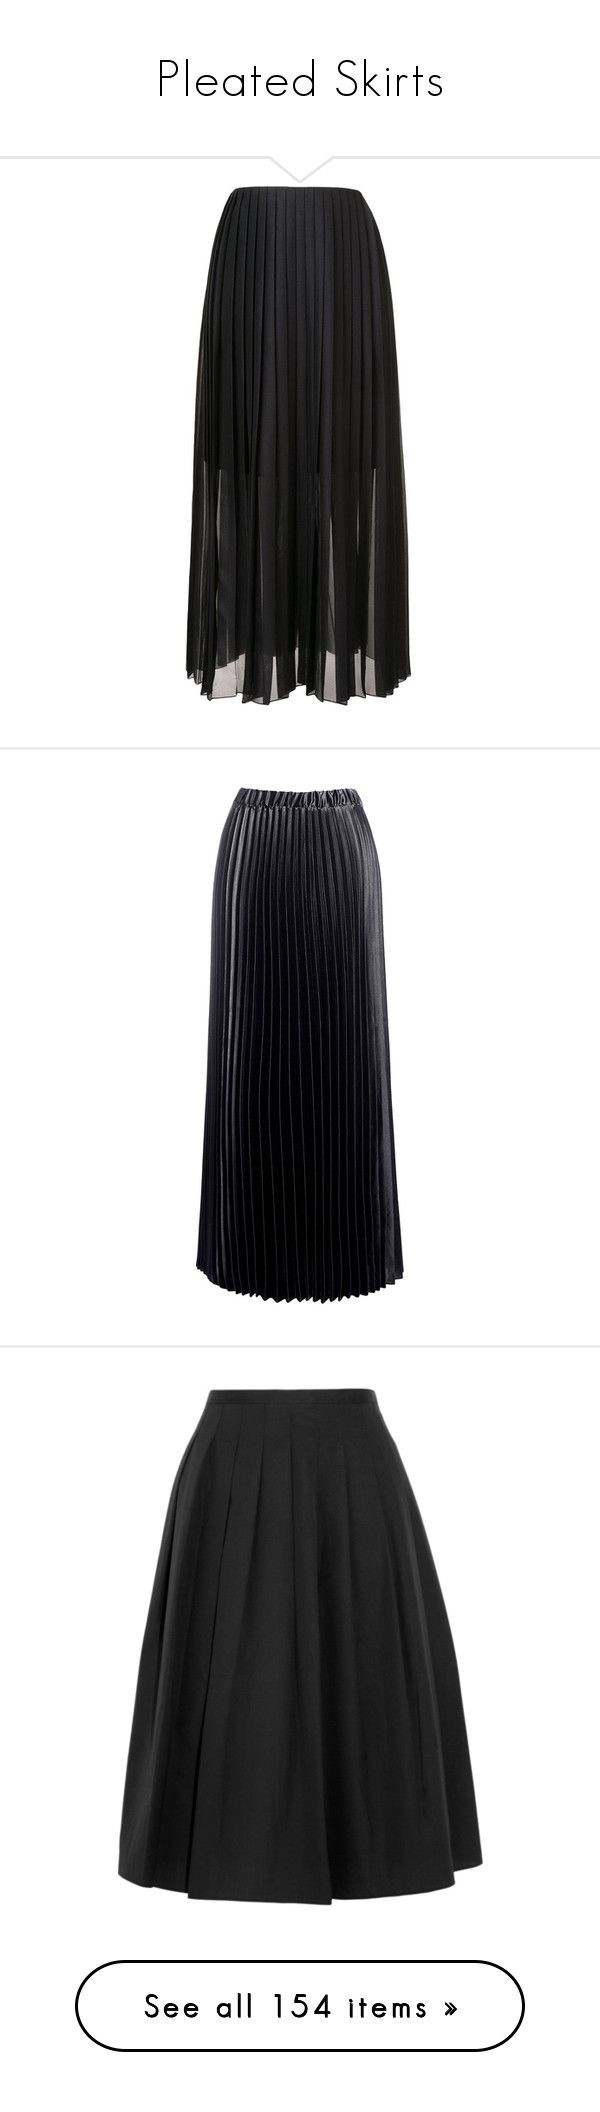 """""""Pleated Skirts"""" by heloisacintrao ❤ liked on Polyvore featuring skirts, bottoms, pleated skirt, long pleated skirt, pleated maxi skirt, floor length skirt, long skirts, black, satin pleated skirt and elastic waist maxi skirt"""